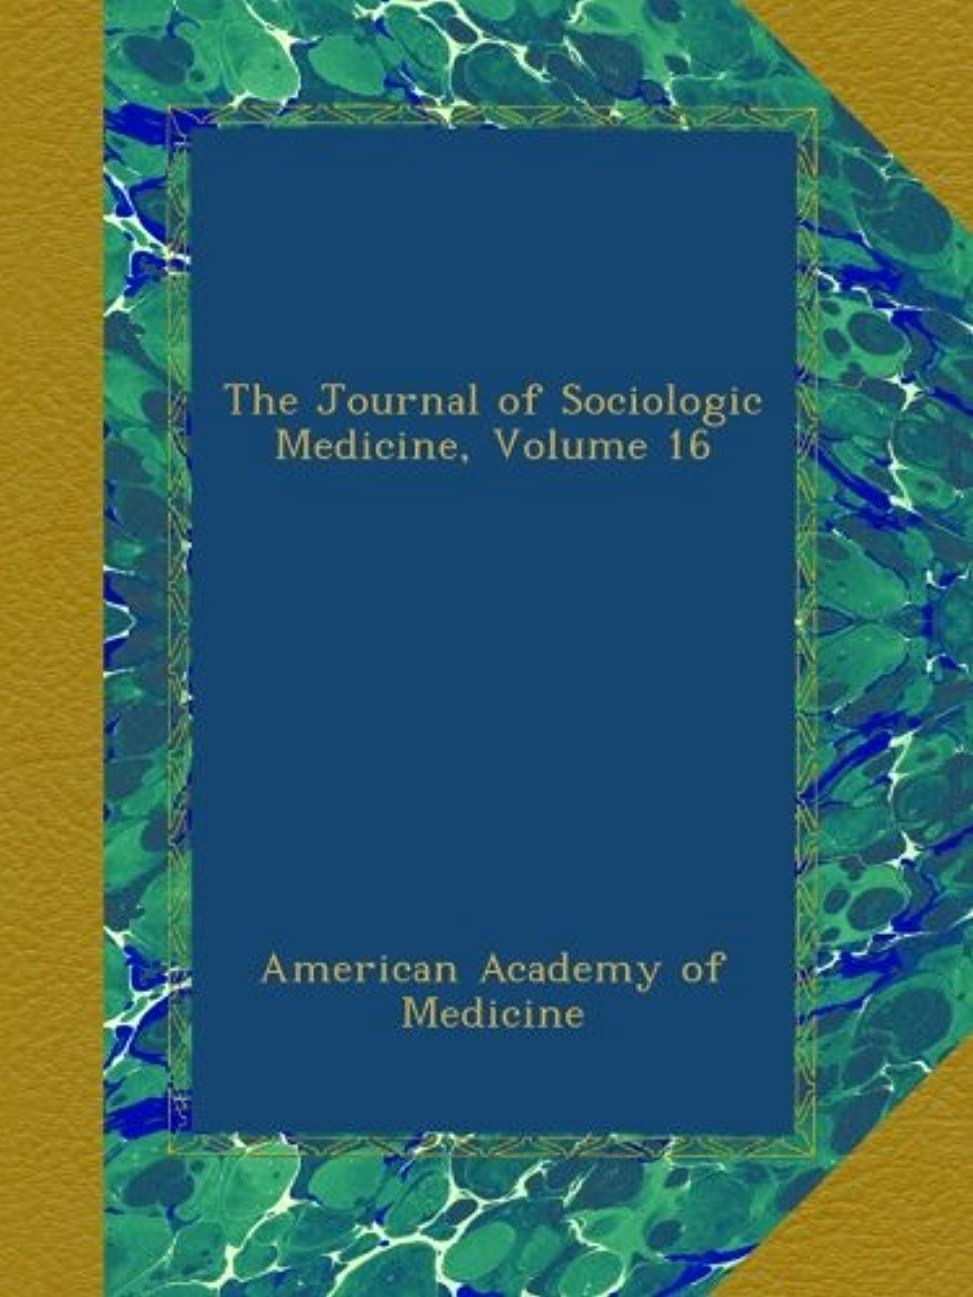 疑い者自信がある受粉者The Journal of Sociologic Medicine, Volume 16